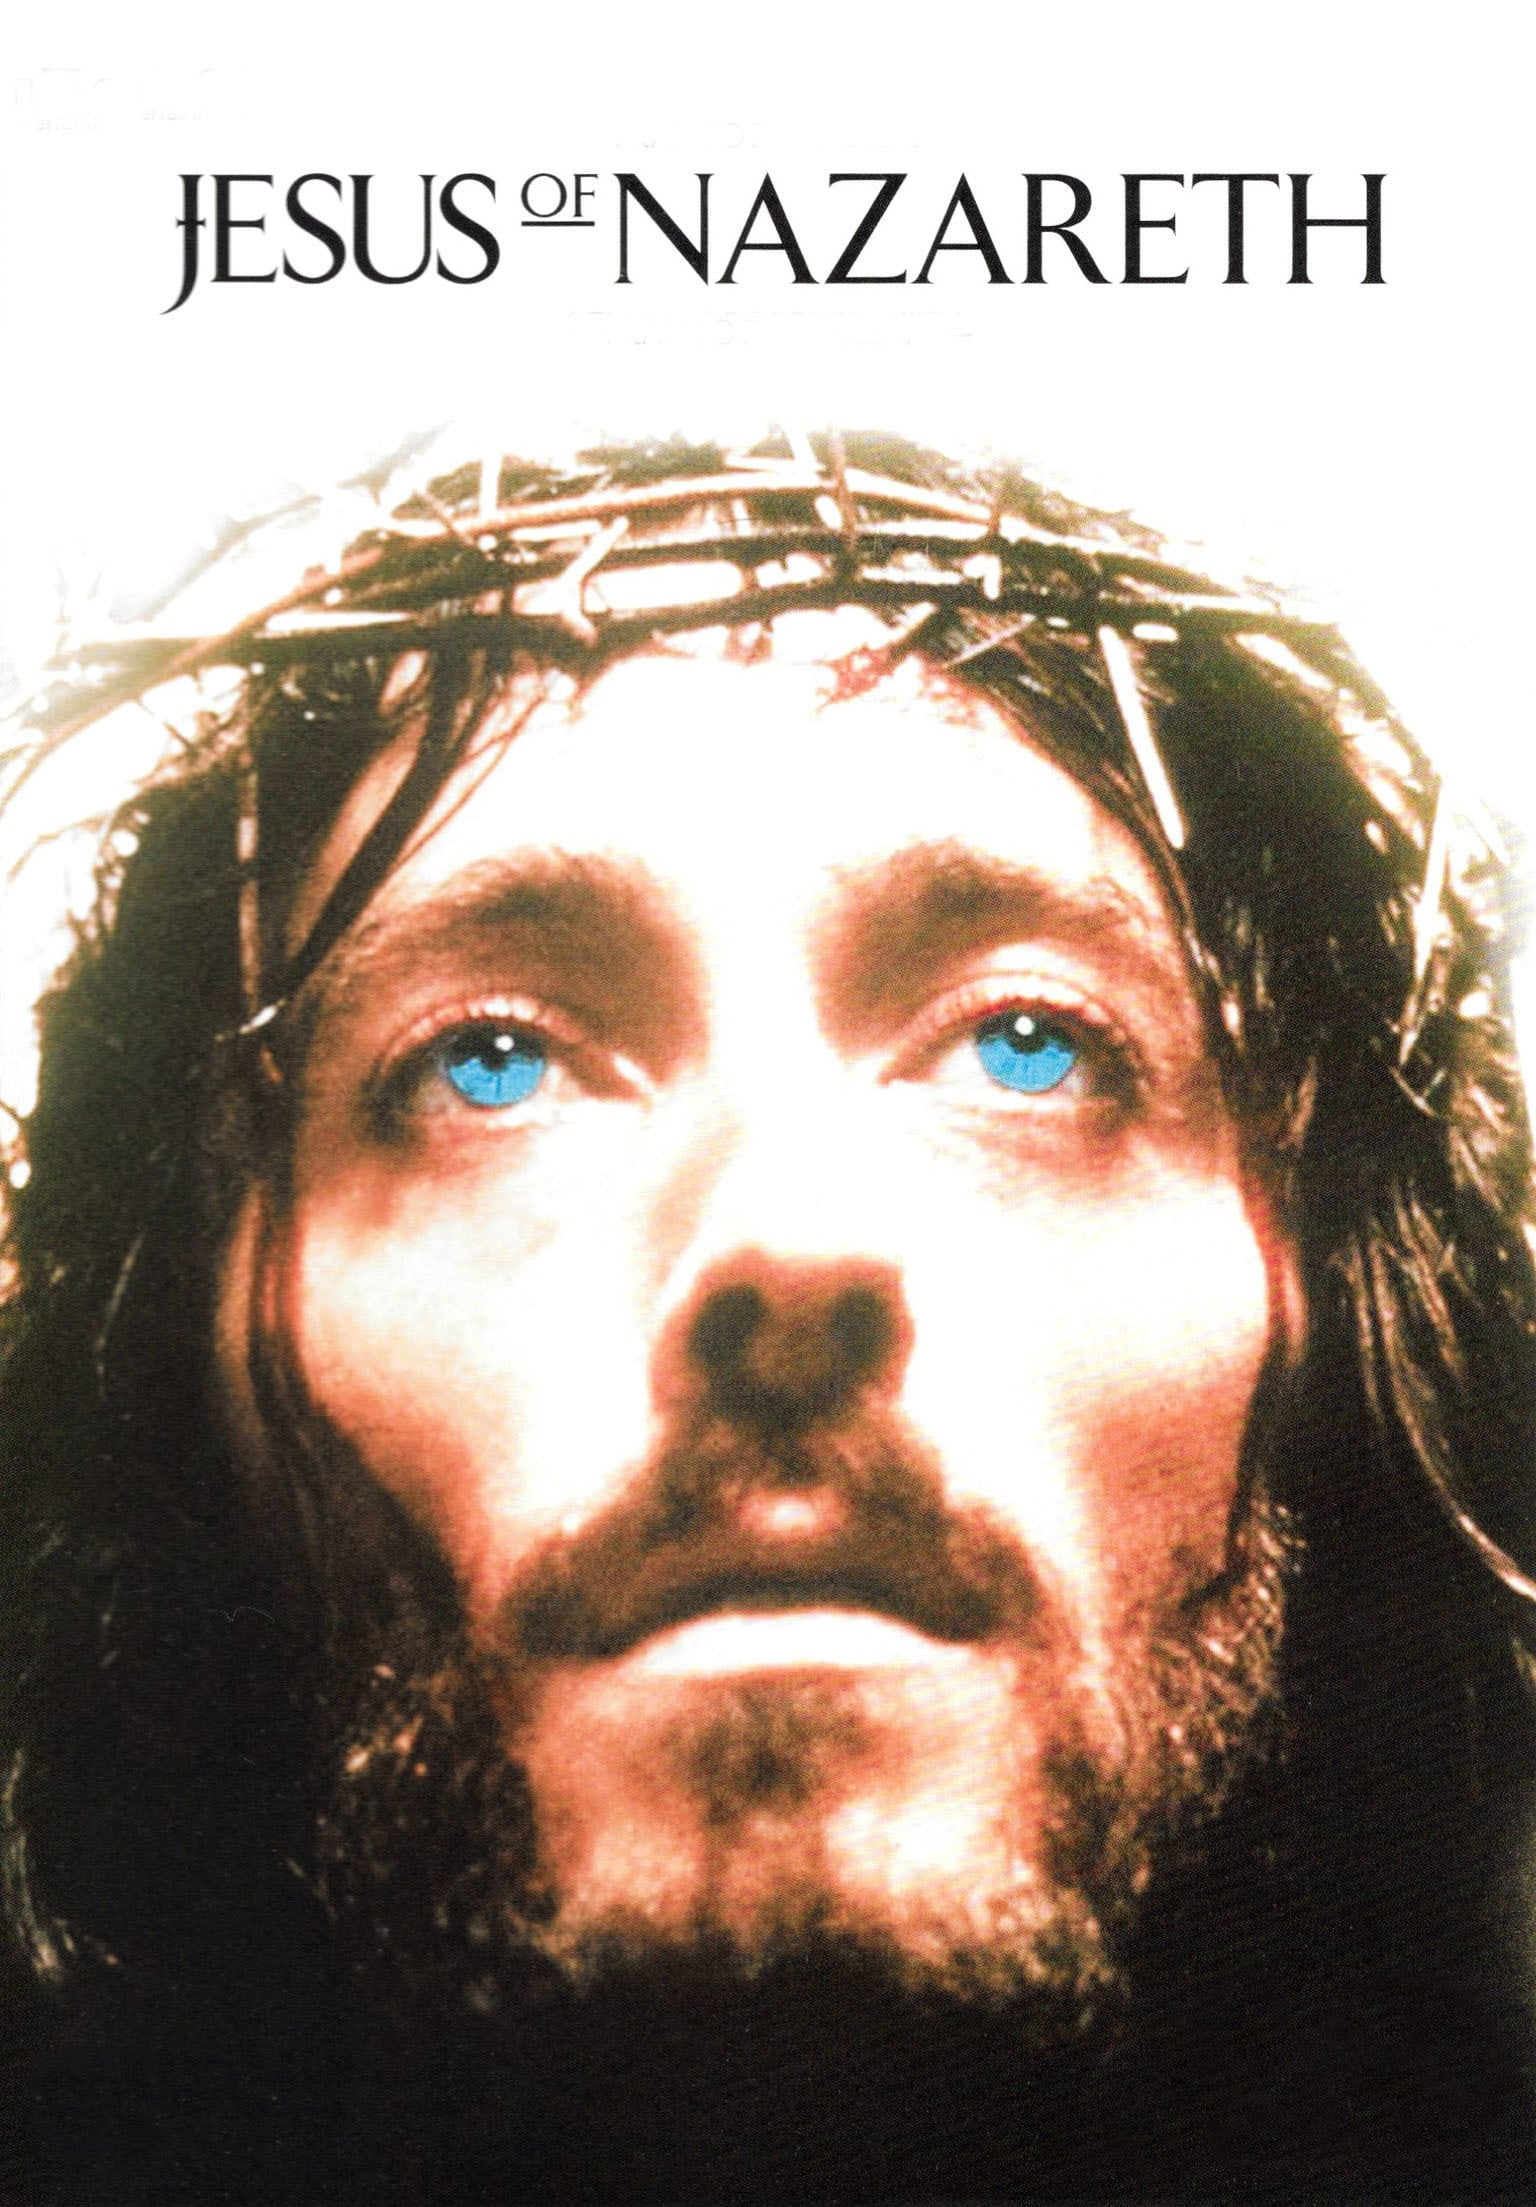 jesus of nazareth Jesus, also called jesus christ, jesus of galilee, or jesus of nazareth, (born c 6–4 bc, bethlehem—died c ad 30, jerusalem), religious leader revered in christianity, one of the world's major religions he is regarded by most christians as the incarnation of god.